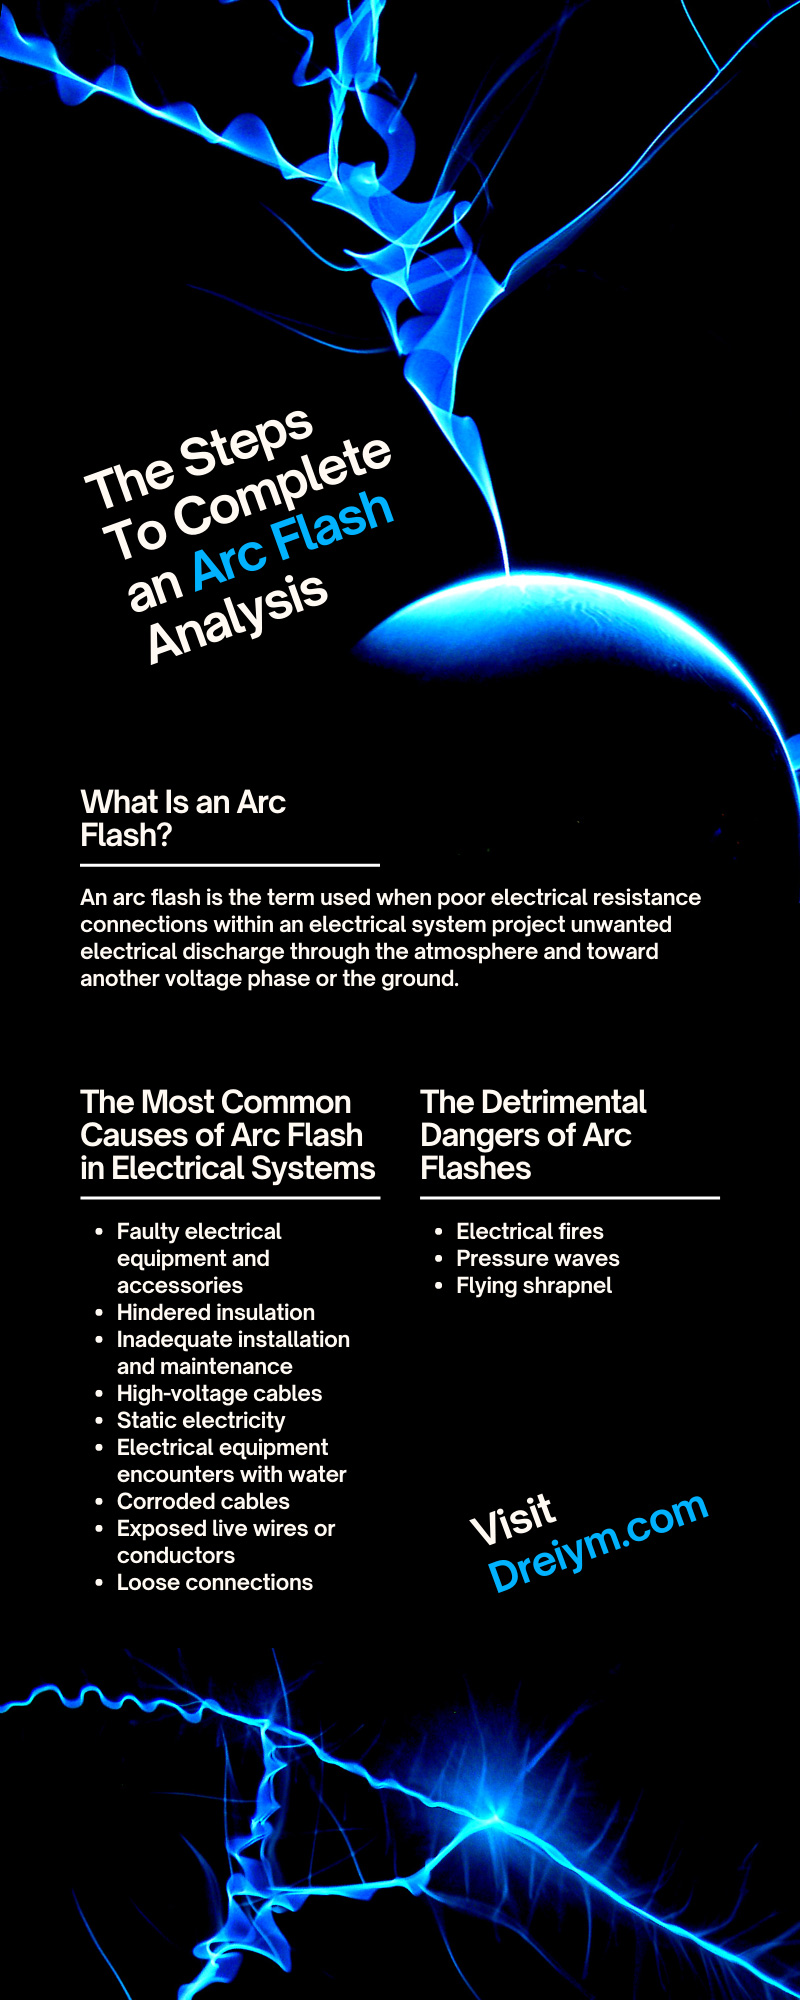 The Steps To Complete an Arc Flash Analysis